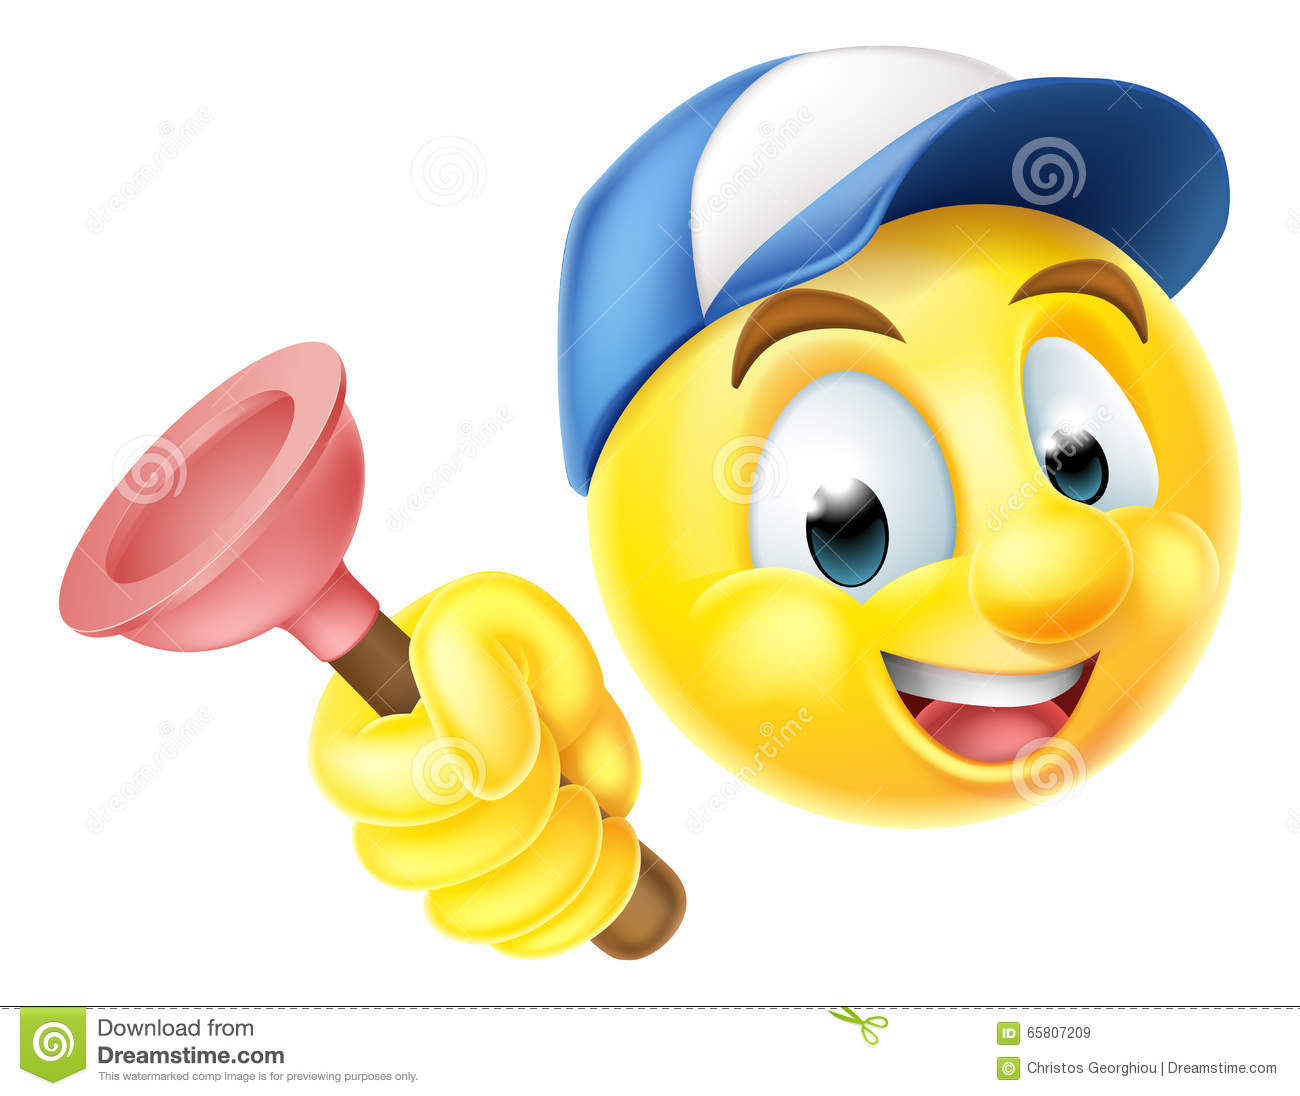 Plumber Emoji Emoticon With Plunger Stock Vector - Image ...